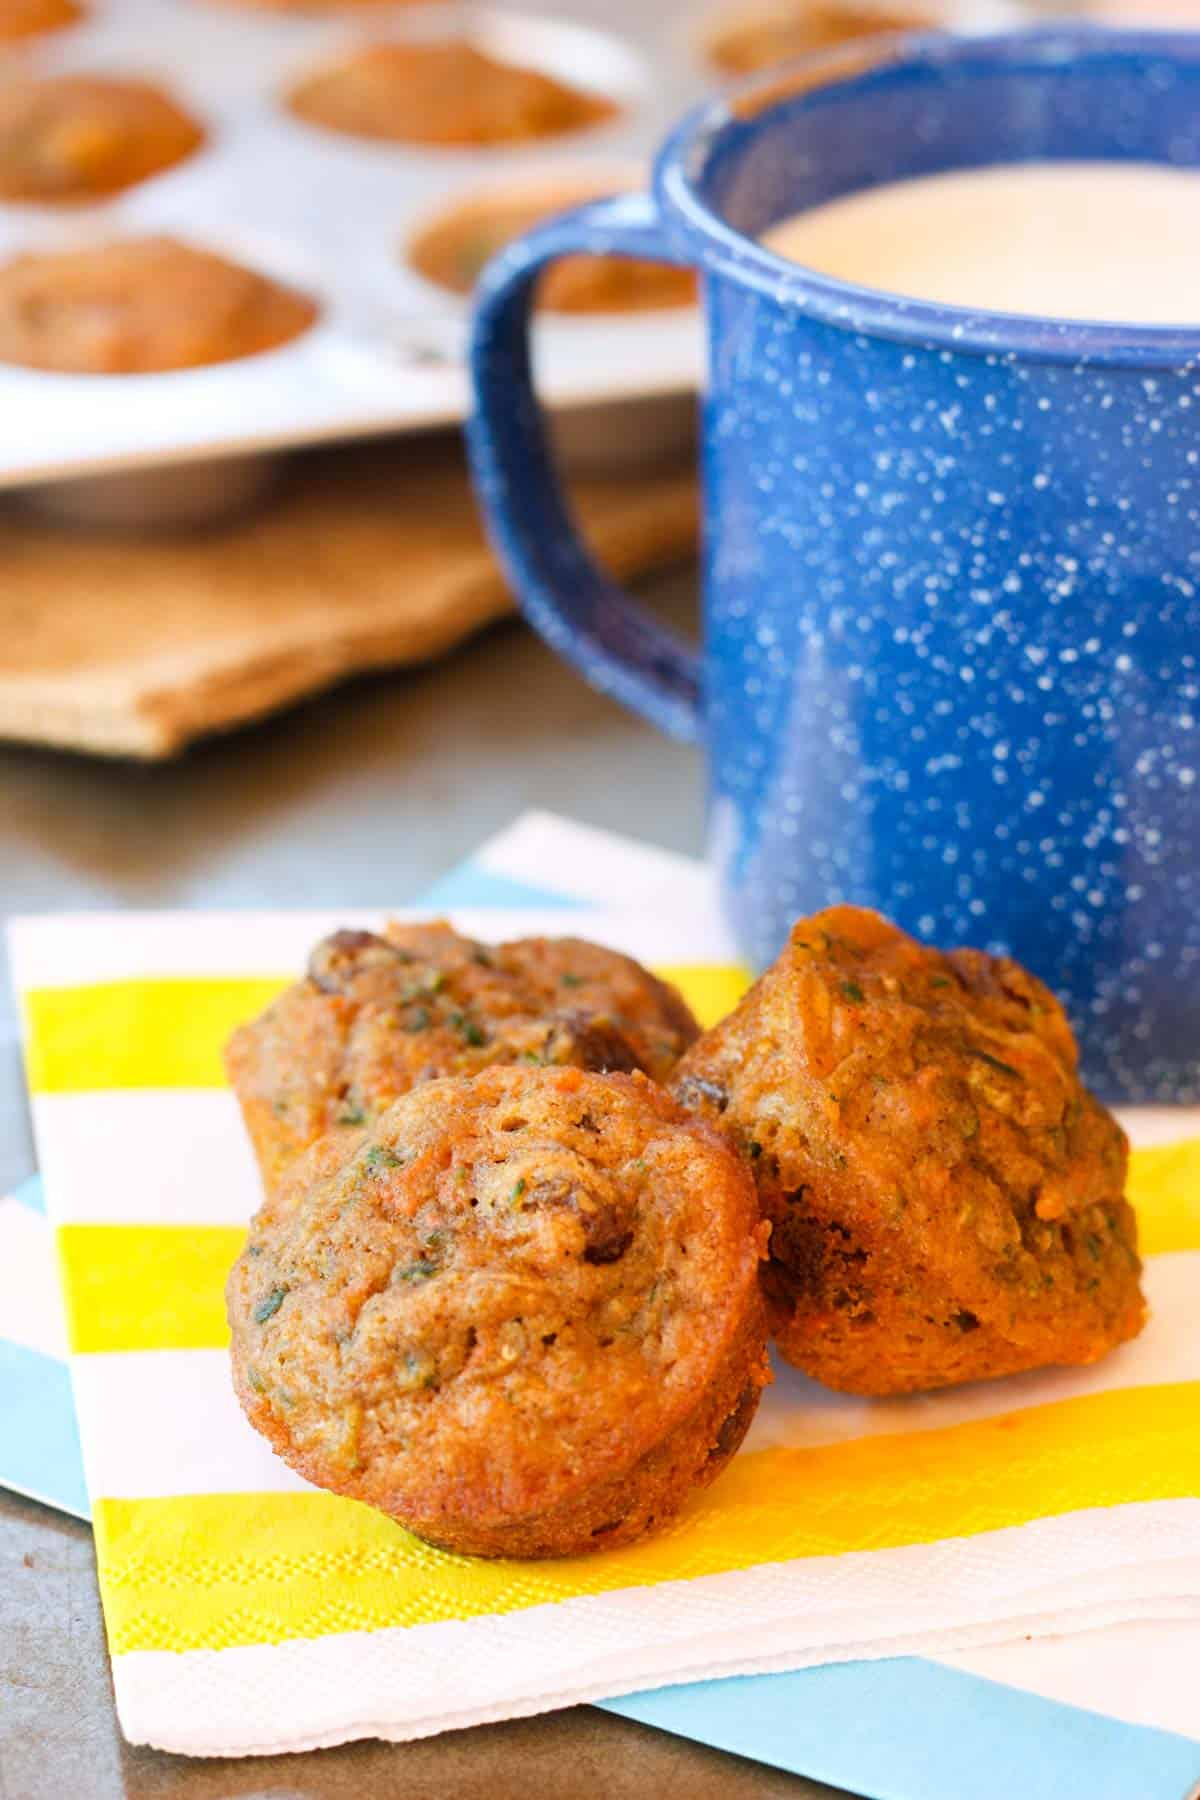 Healthy Carrot Zucchini Muffins on a striped napkin next to a blue speckled mug of milk